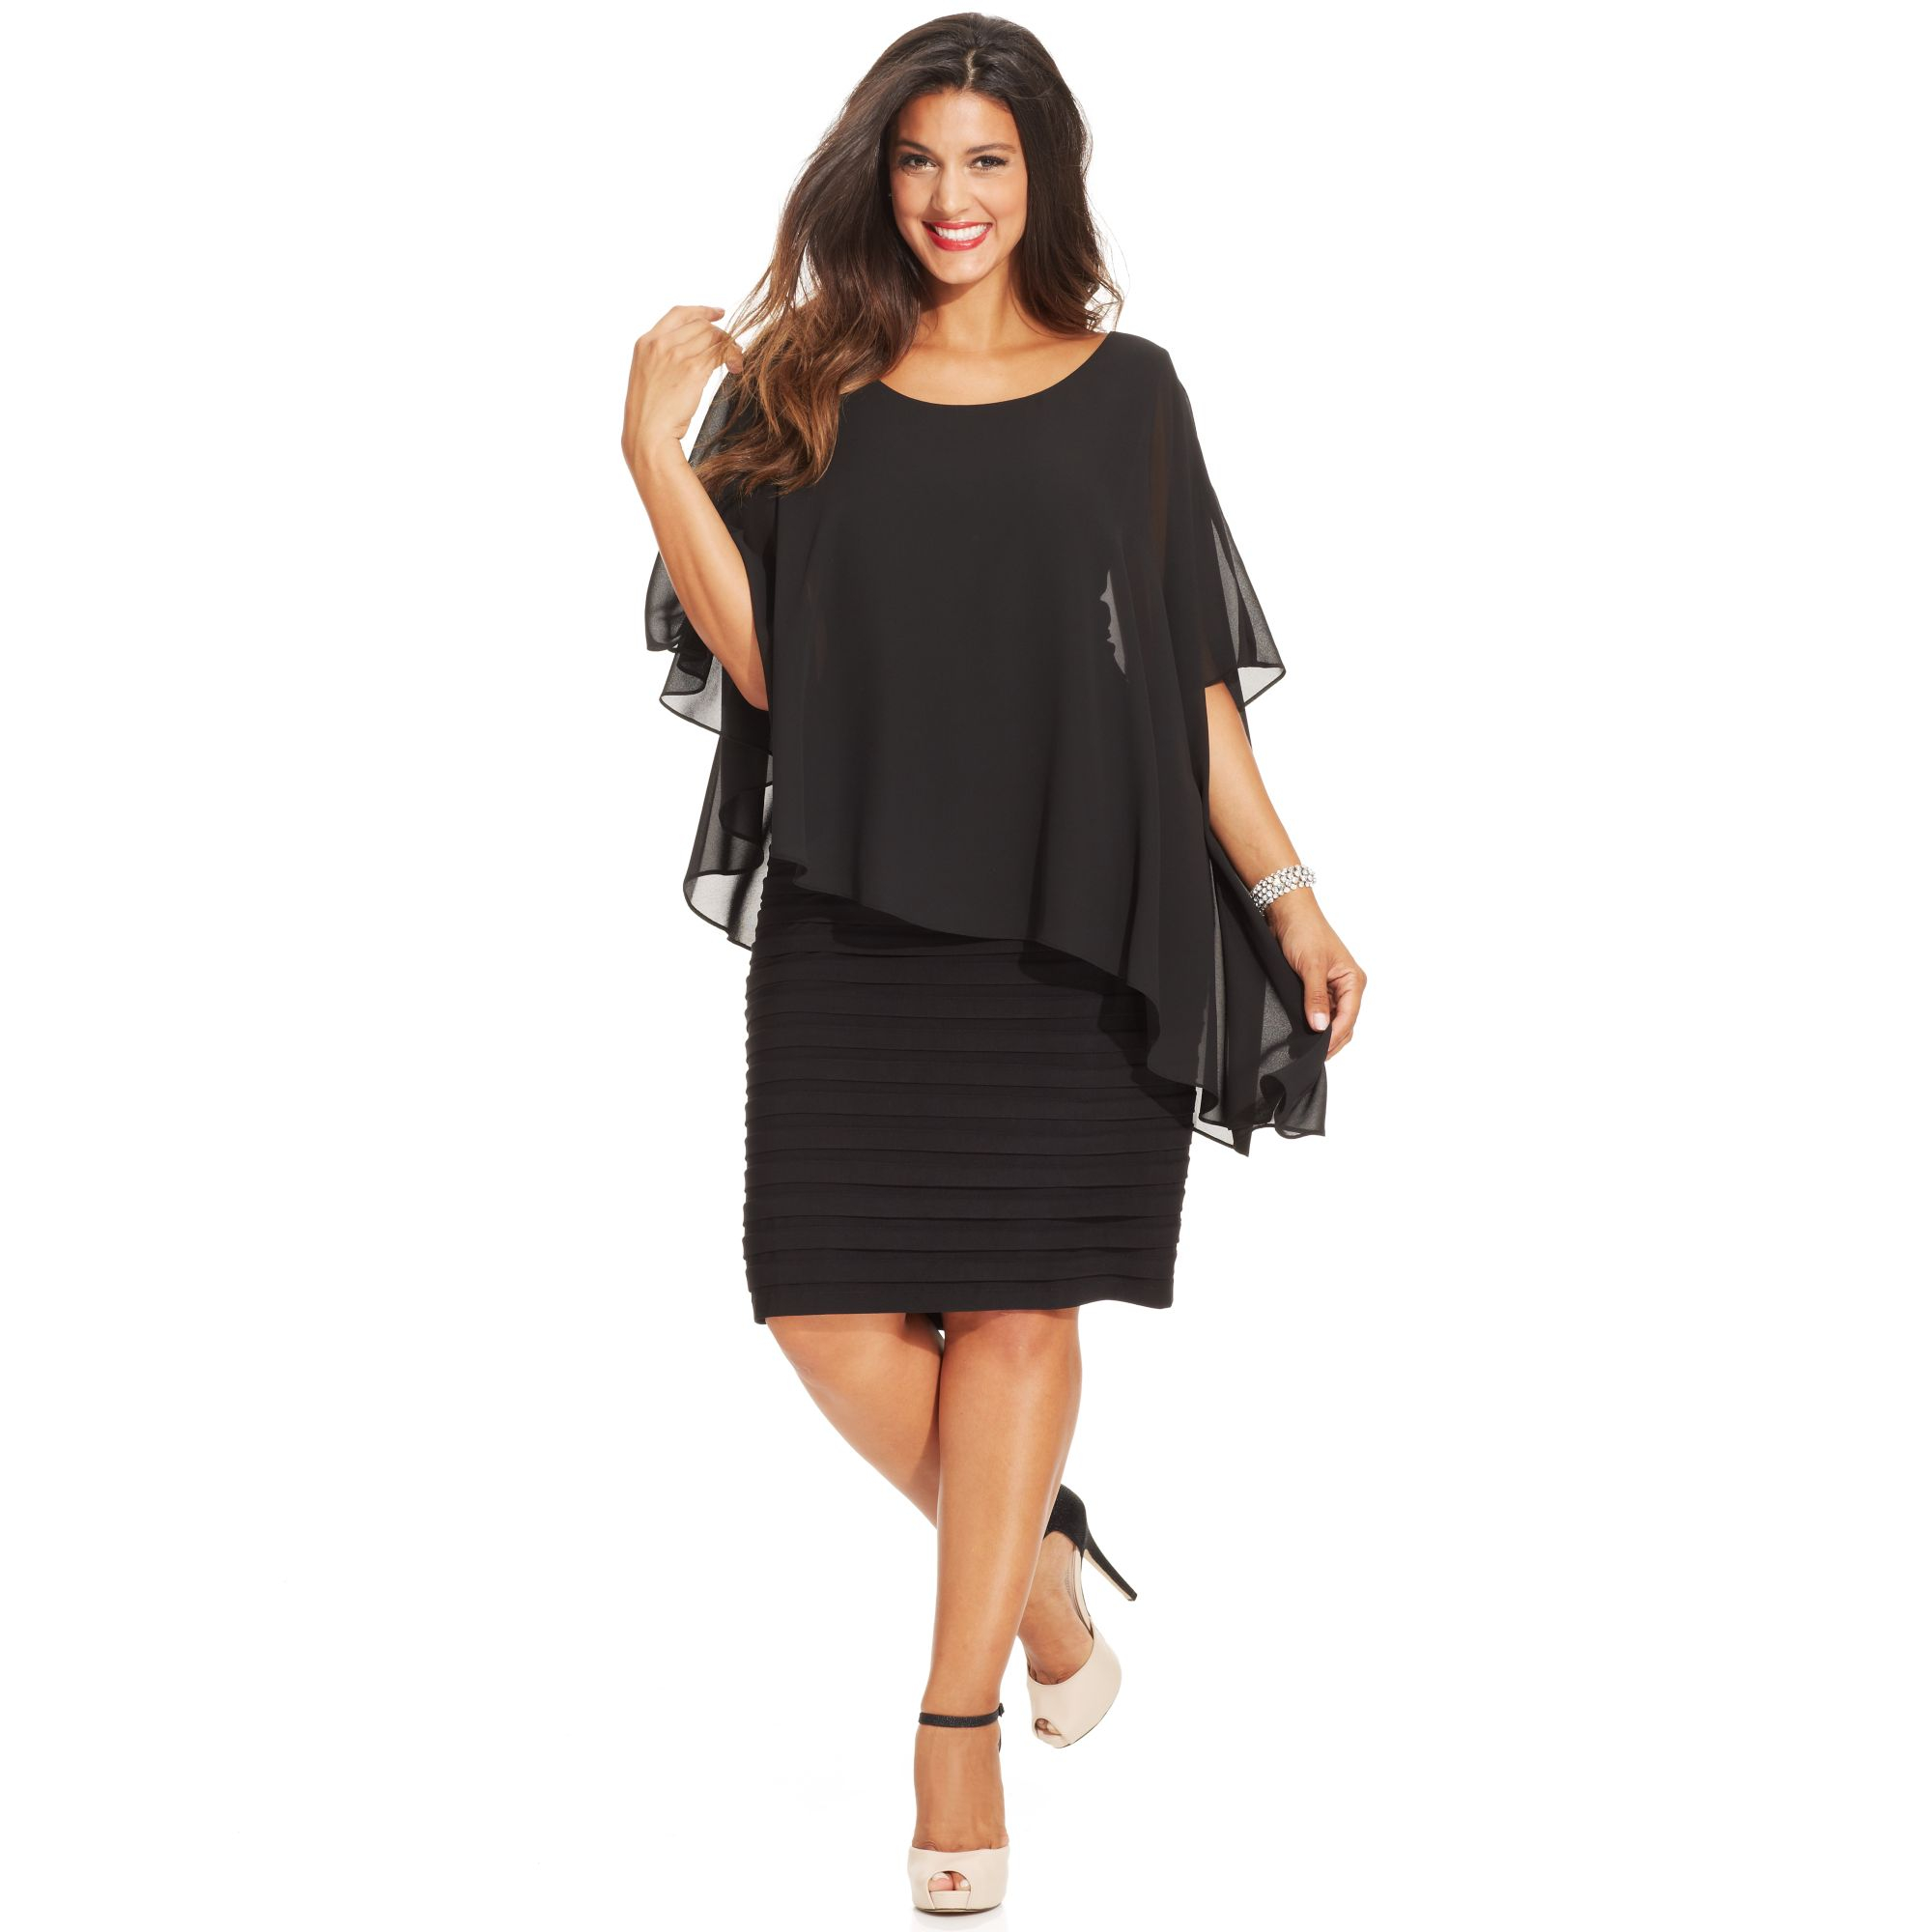 macys party dresses plus size photo - 1